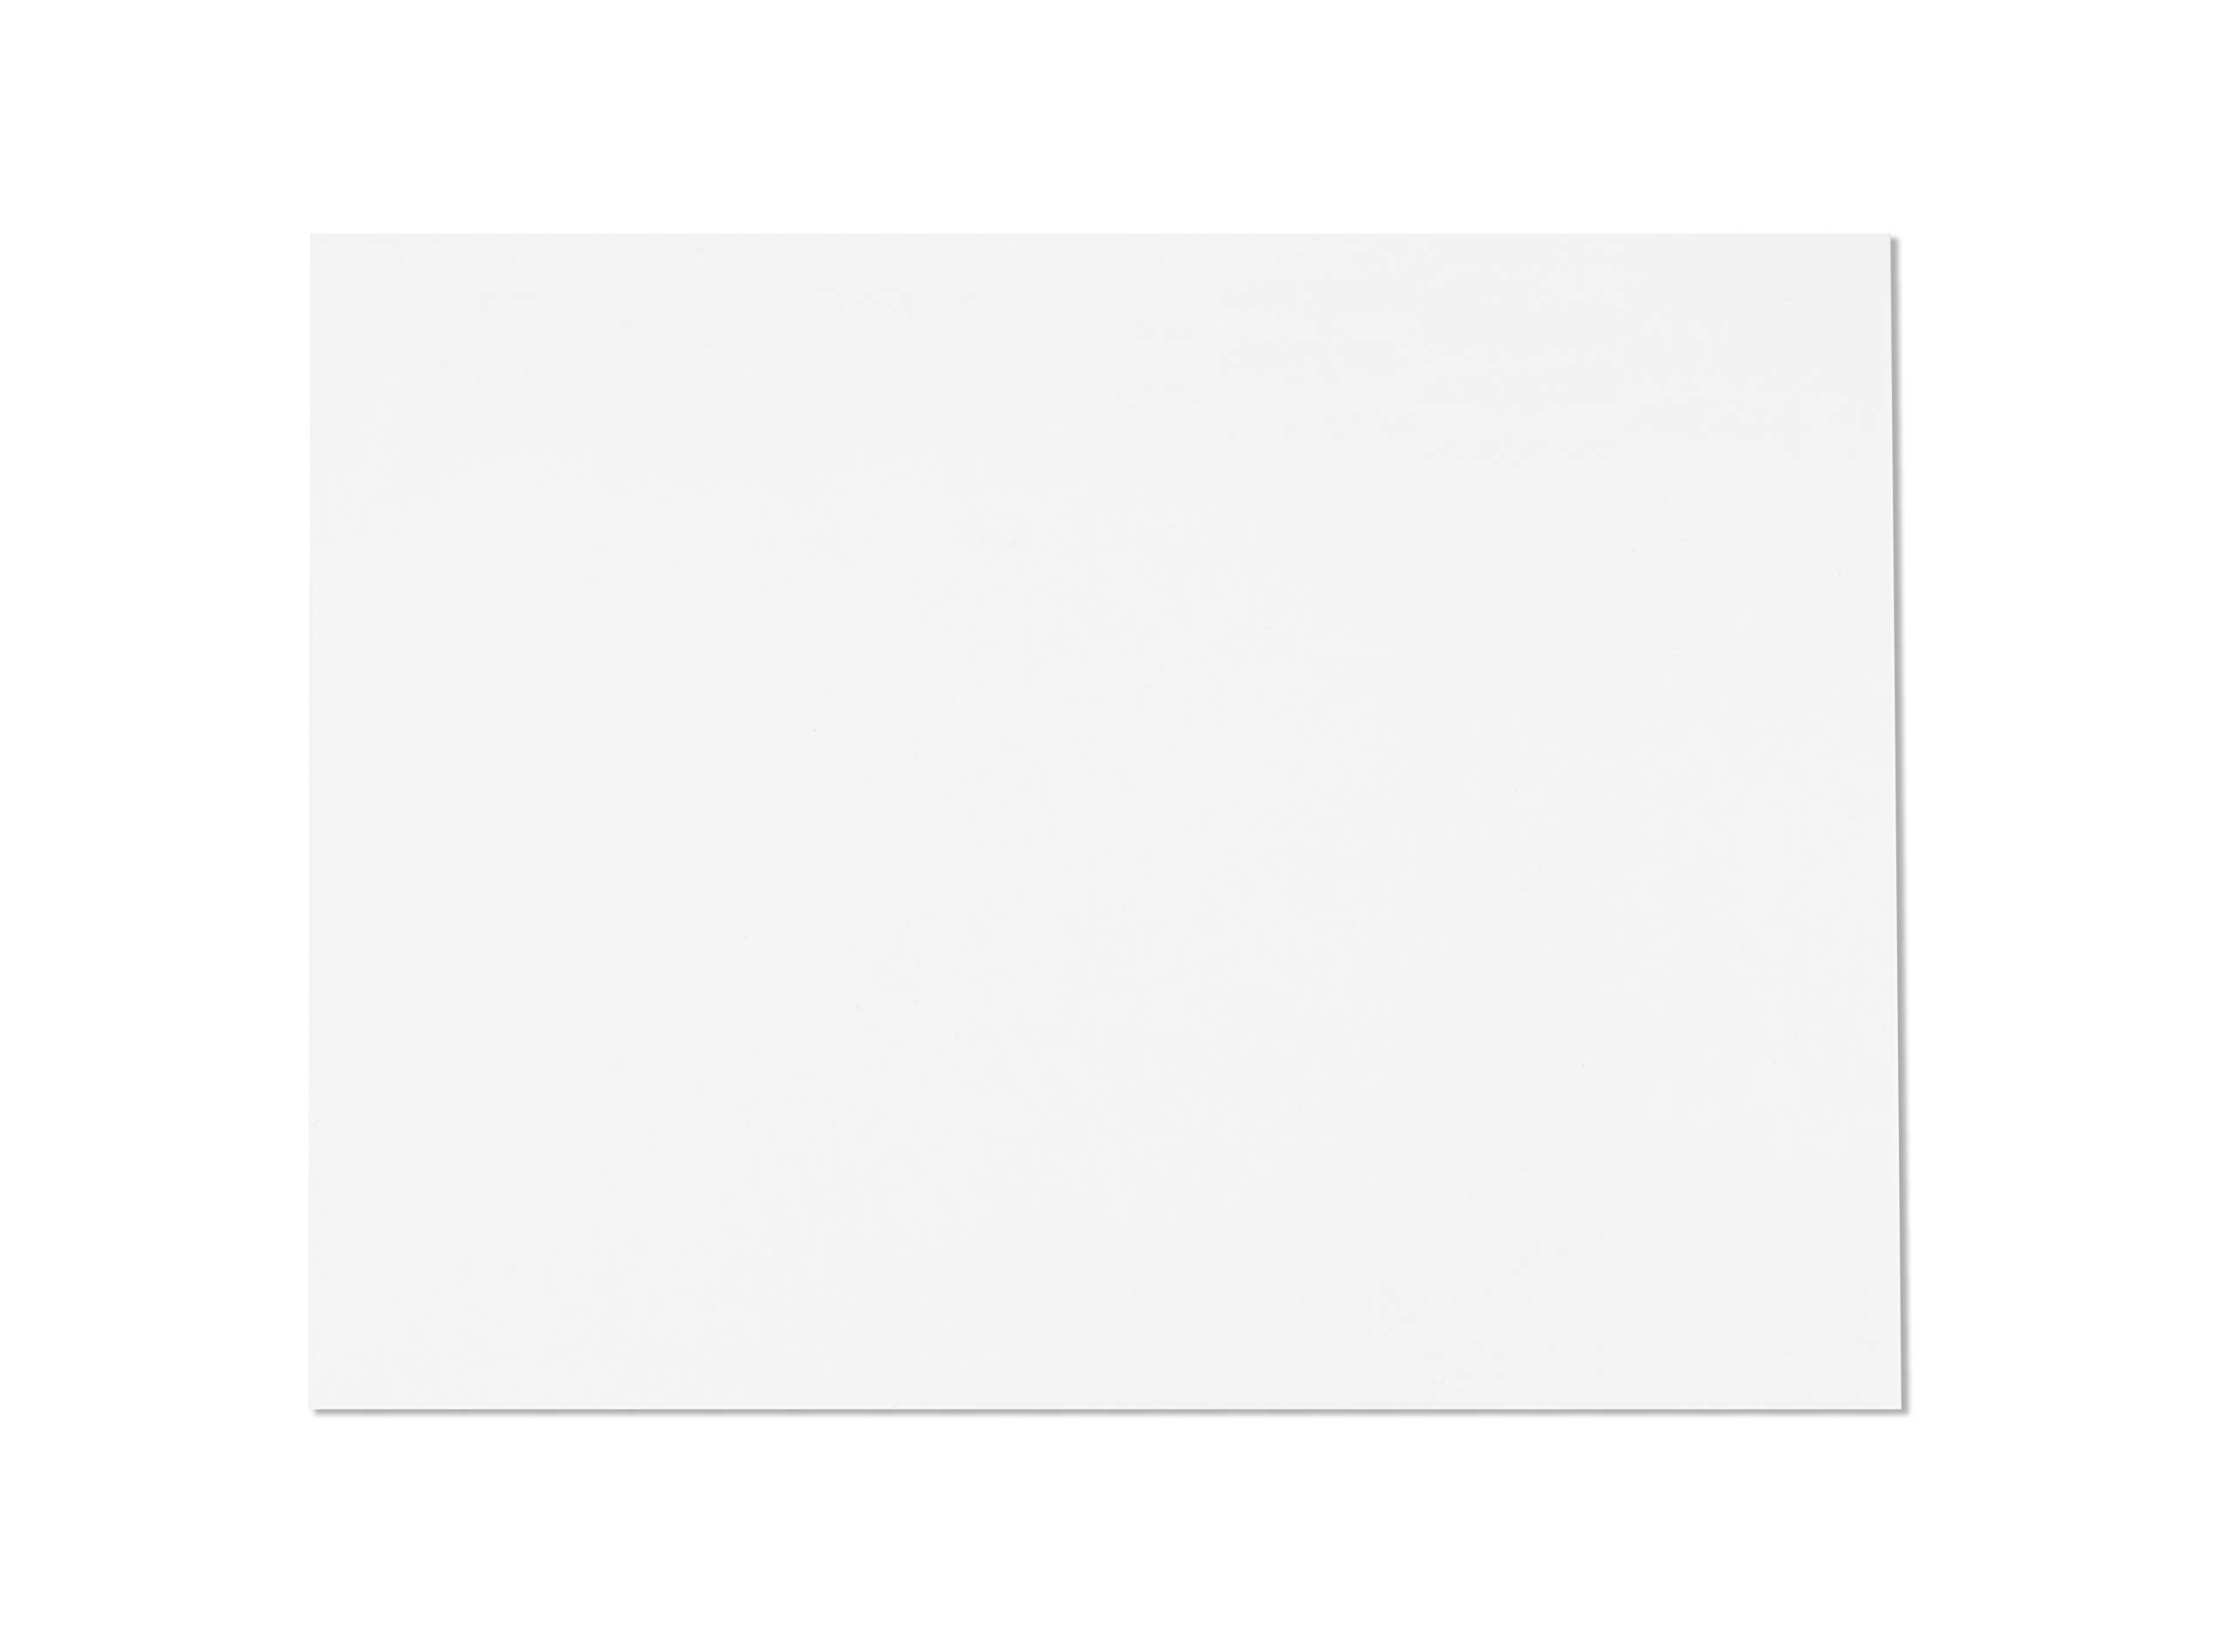 Check O Matic 9x12 Envelopes – Jumbo Peel and Seal White Business Envelopes with Open Side Booklet Orientation for Catalog, Mailer, Invoice, Invitations, Checks & More – 30 Count Pack by EnDoc (Image #4)